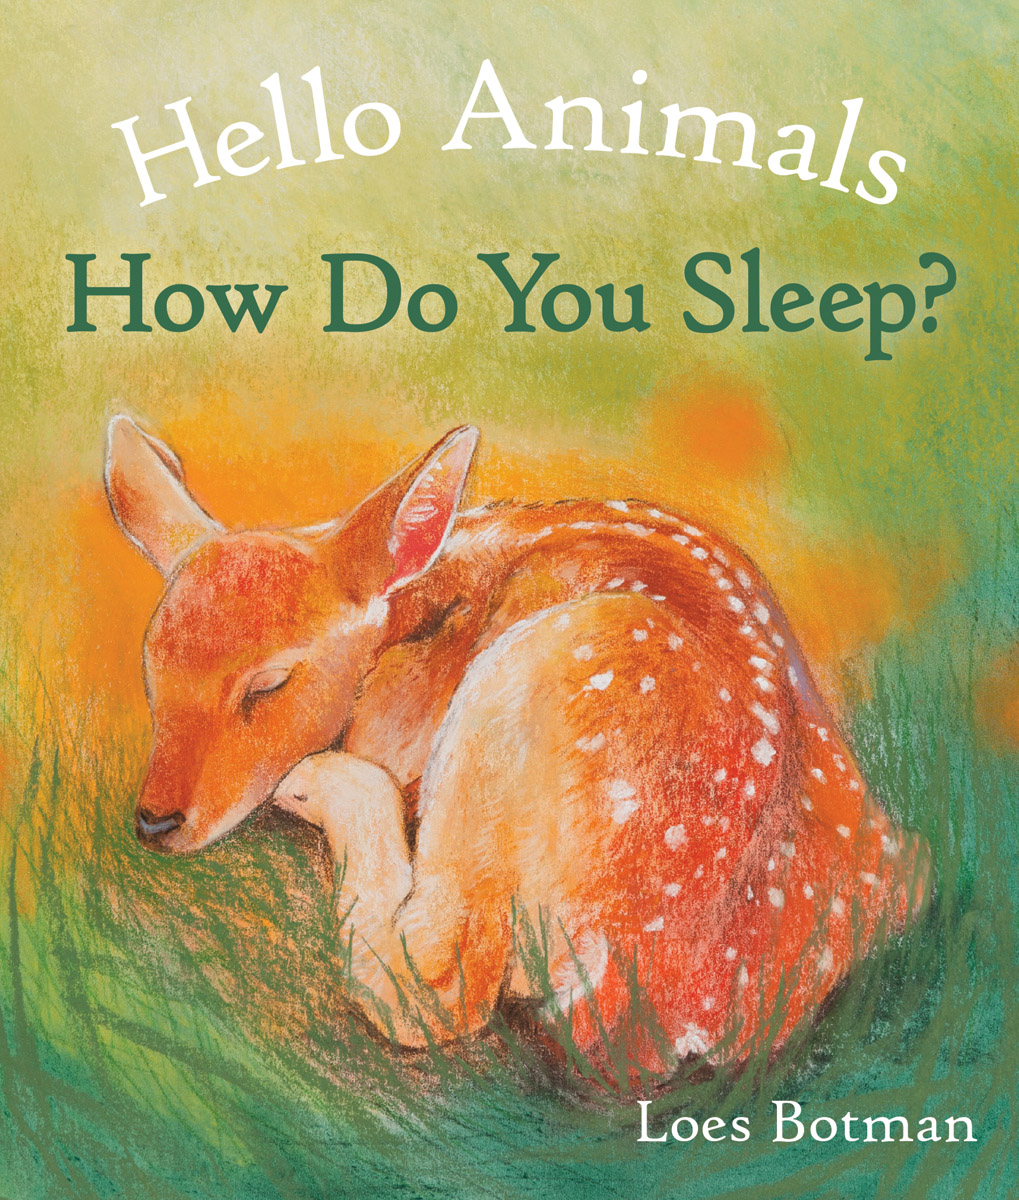 Hello Animals, How Do You Sleep? - Floris Books